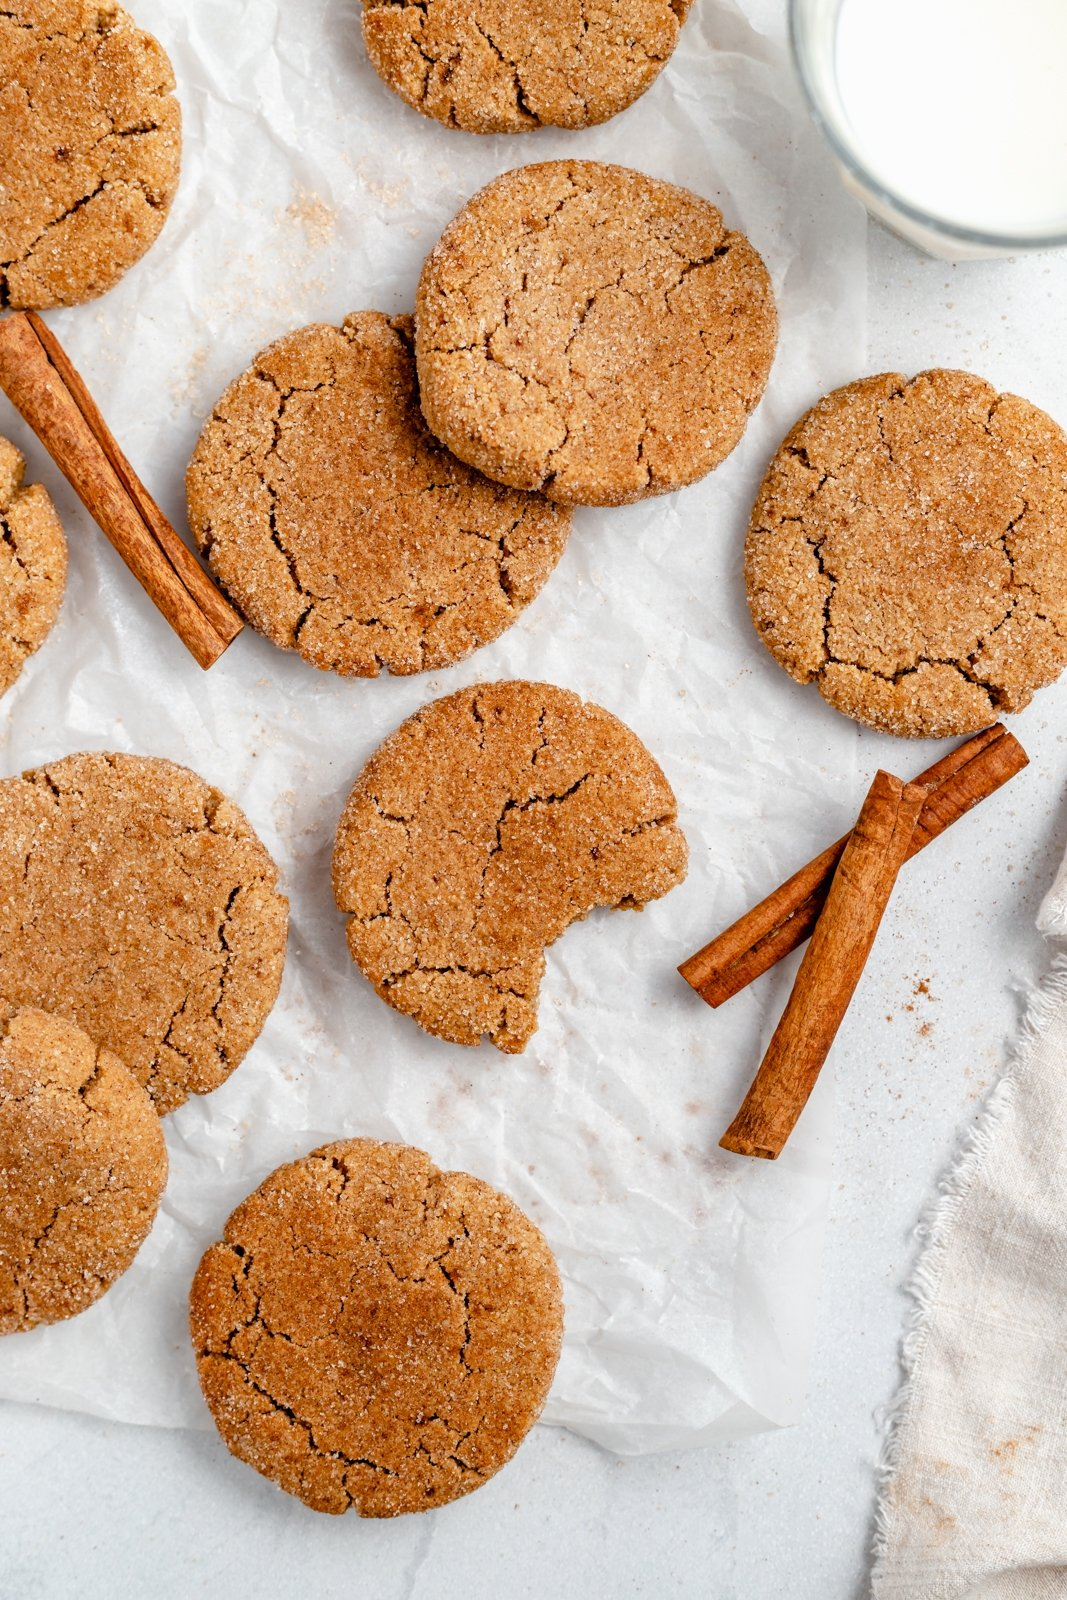 grain free snickerdoodles on parchment paper with cinnamon sticks